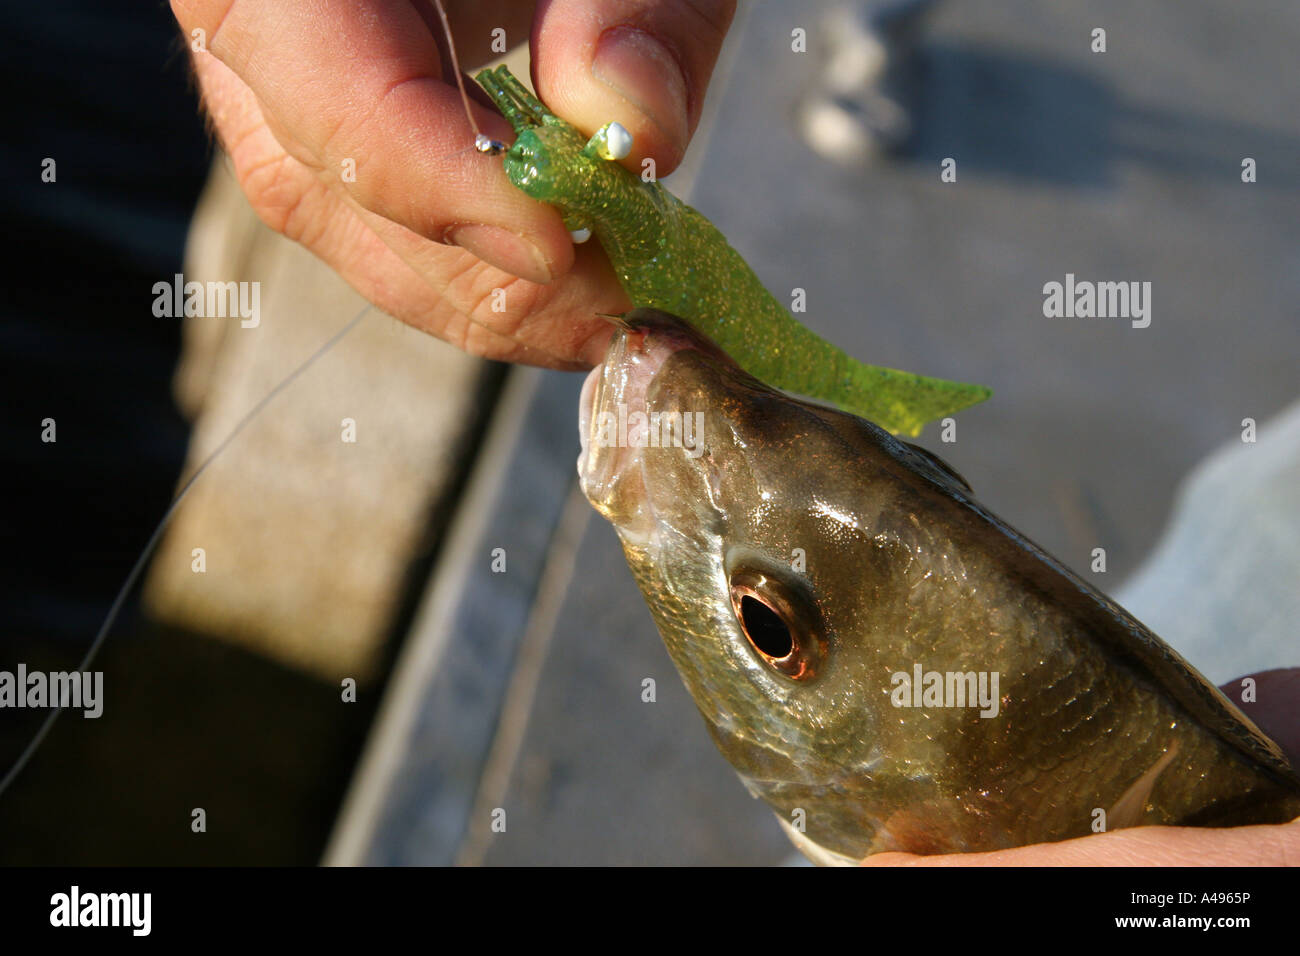 Removing a fish hook Stock Photo